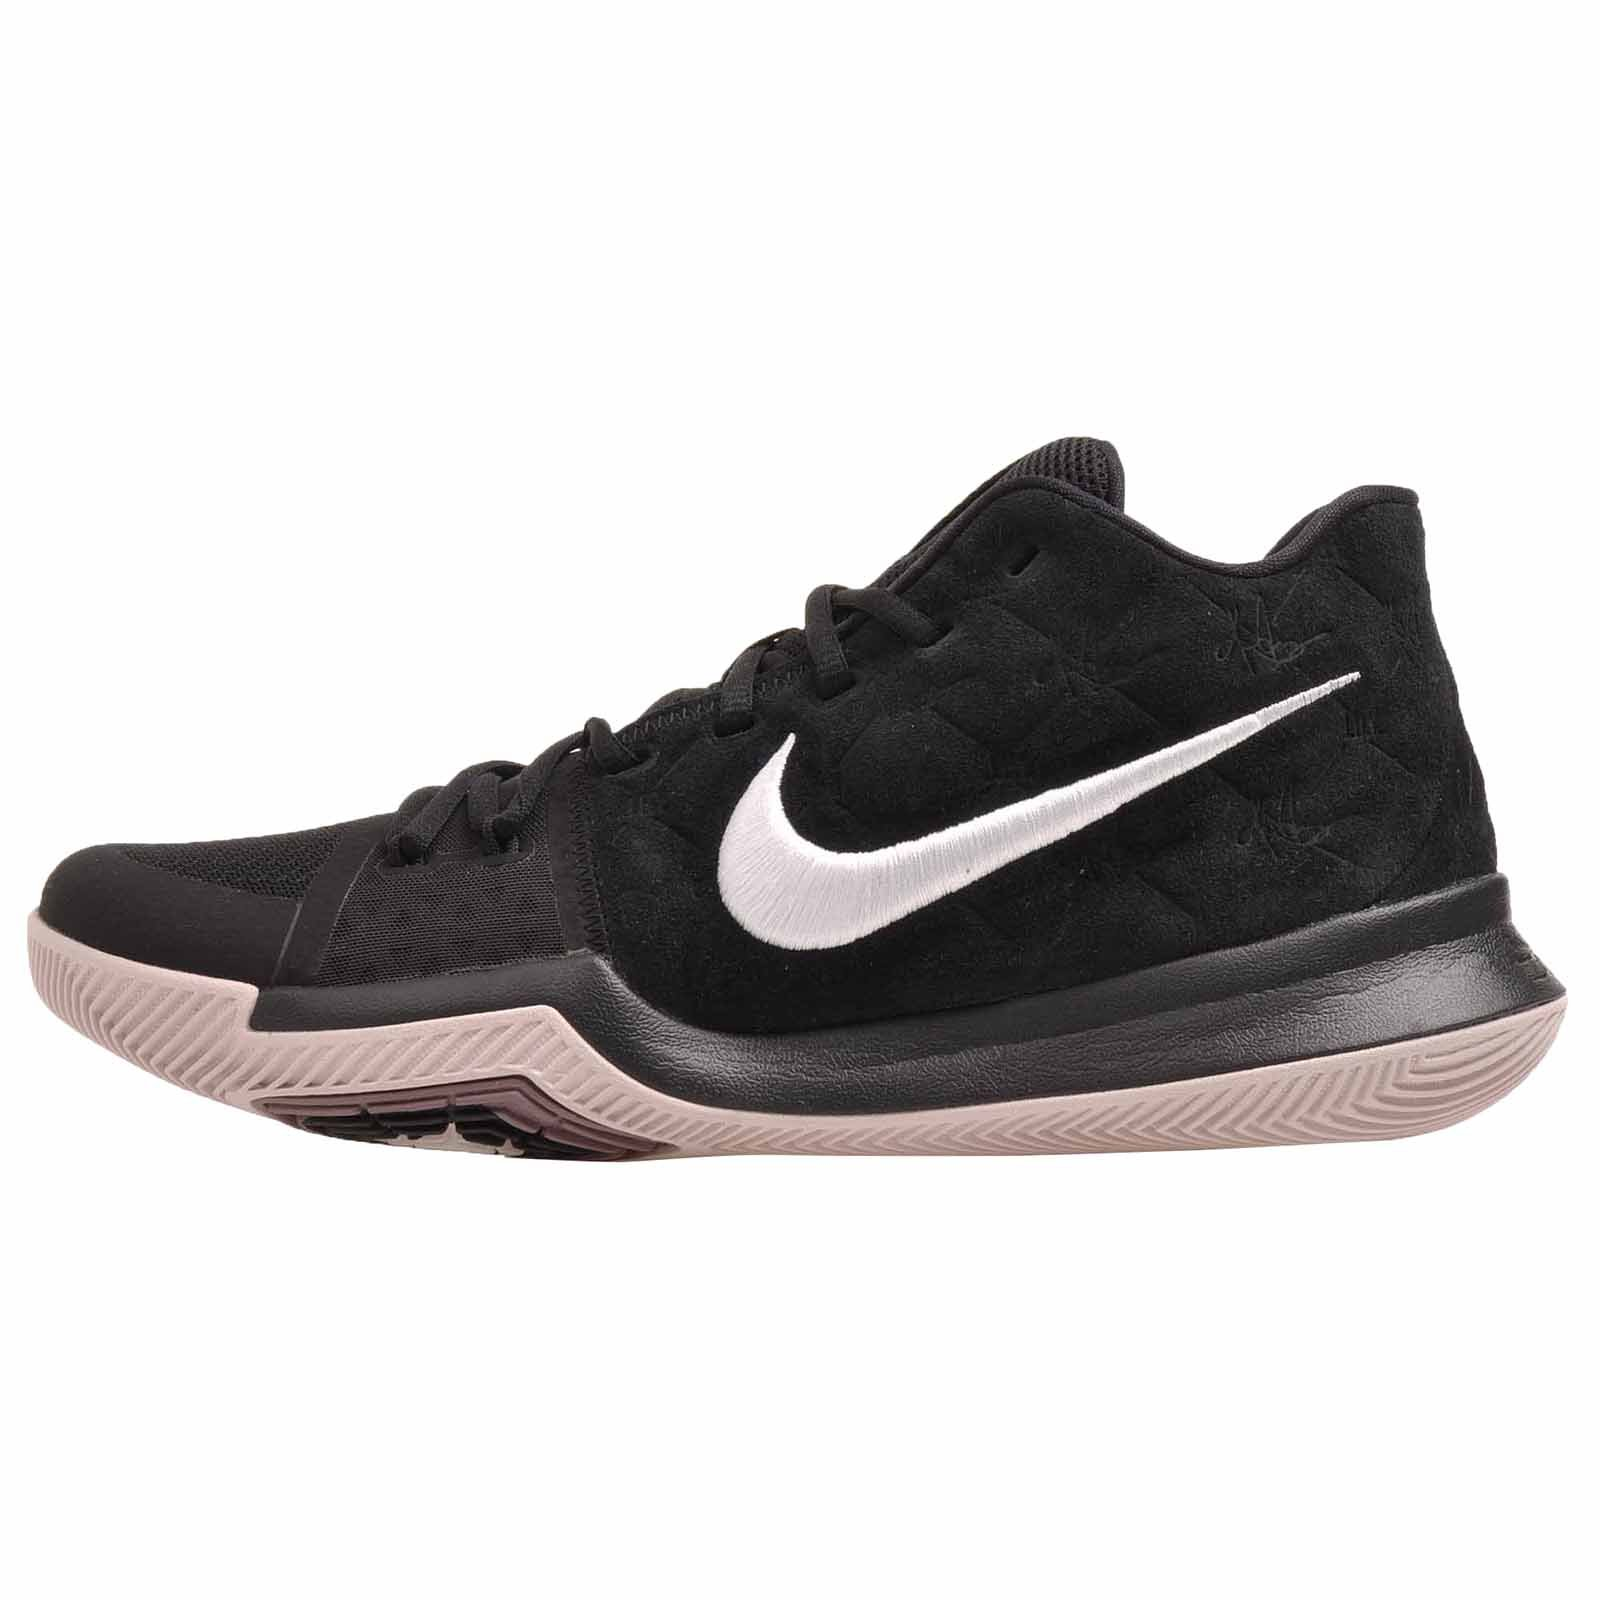 free shipping 06b7e a1f0e Nike Kyrie 3 Basketball Shoes Mens Kyrie Irving Black/White-Silt Red New  852395-010 - 11.5